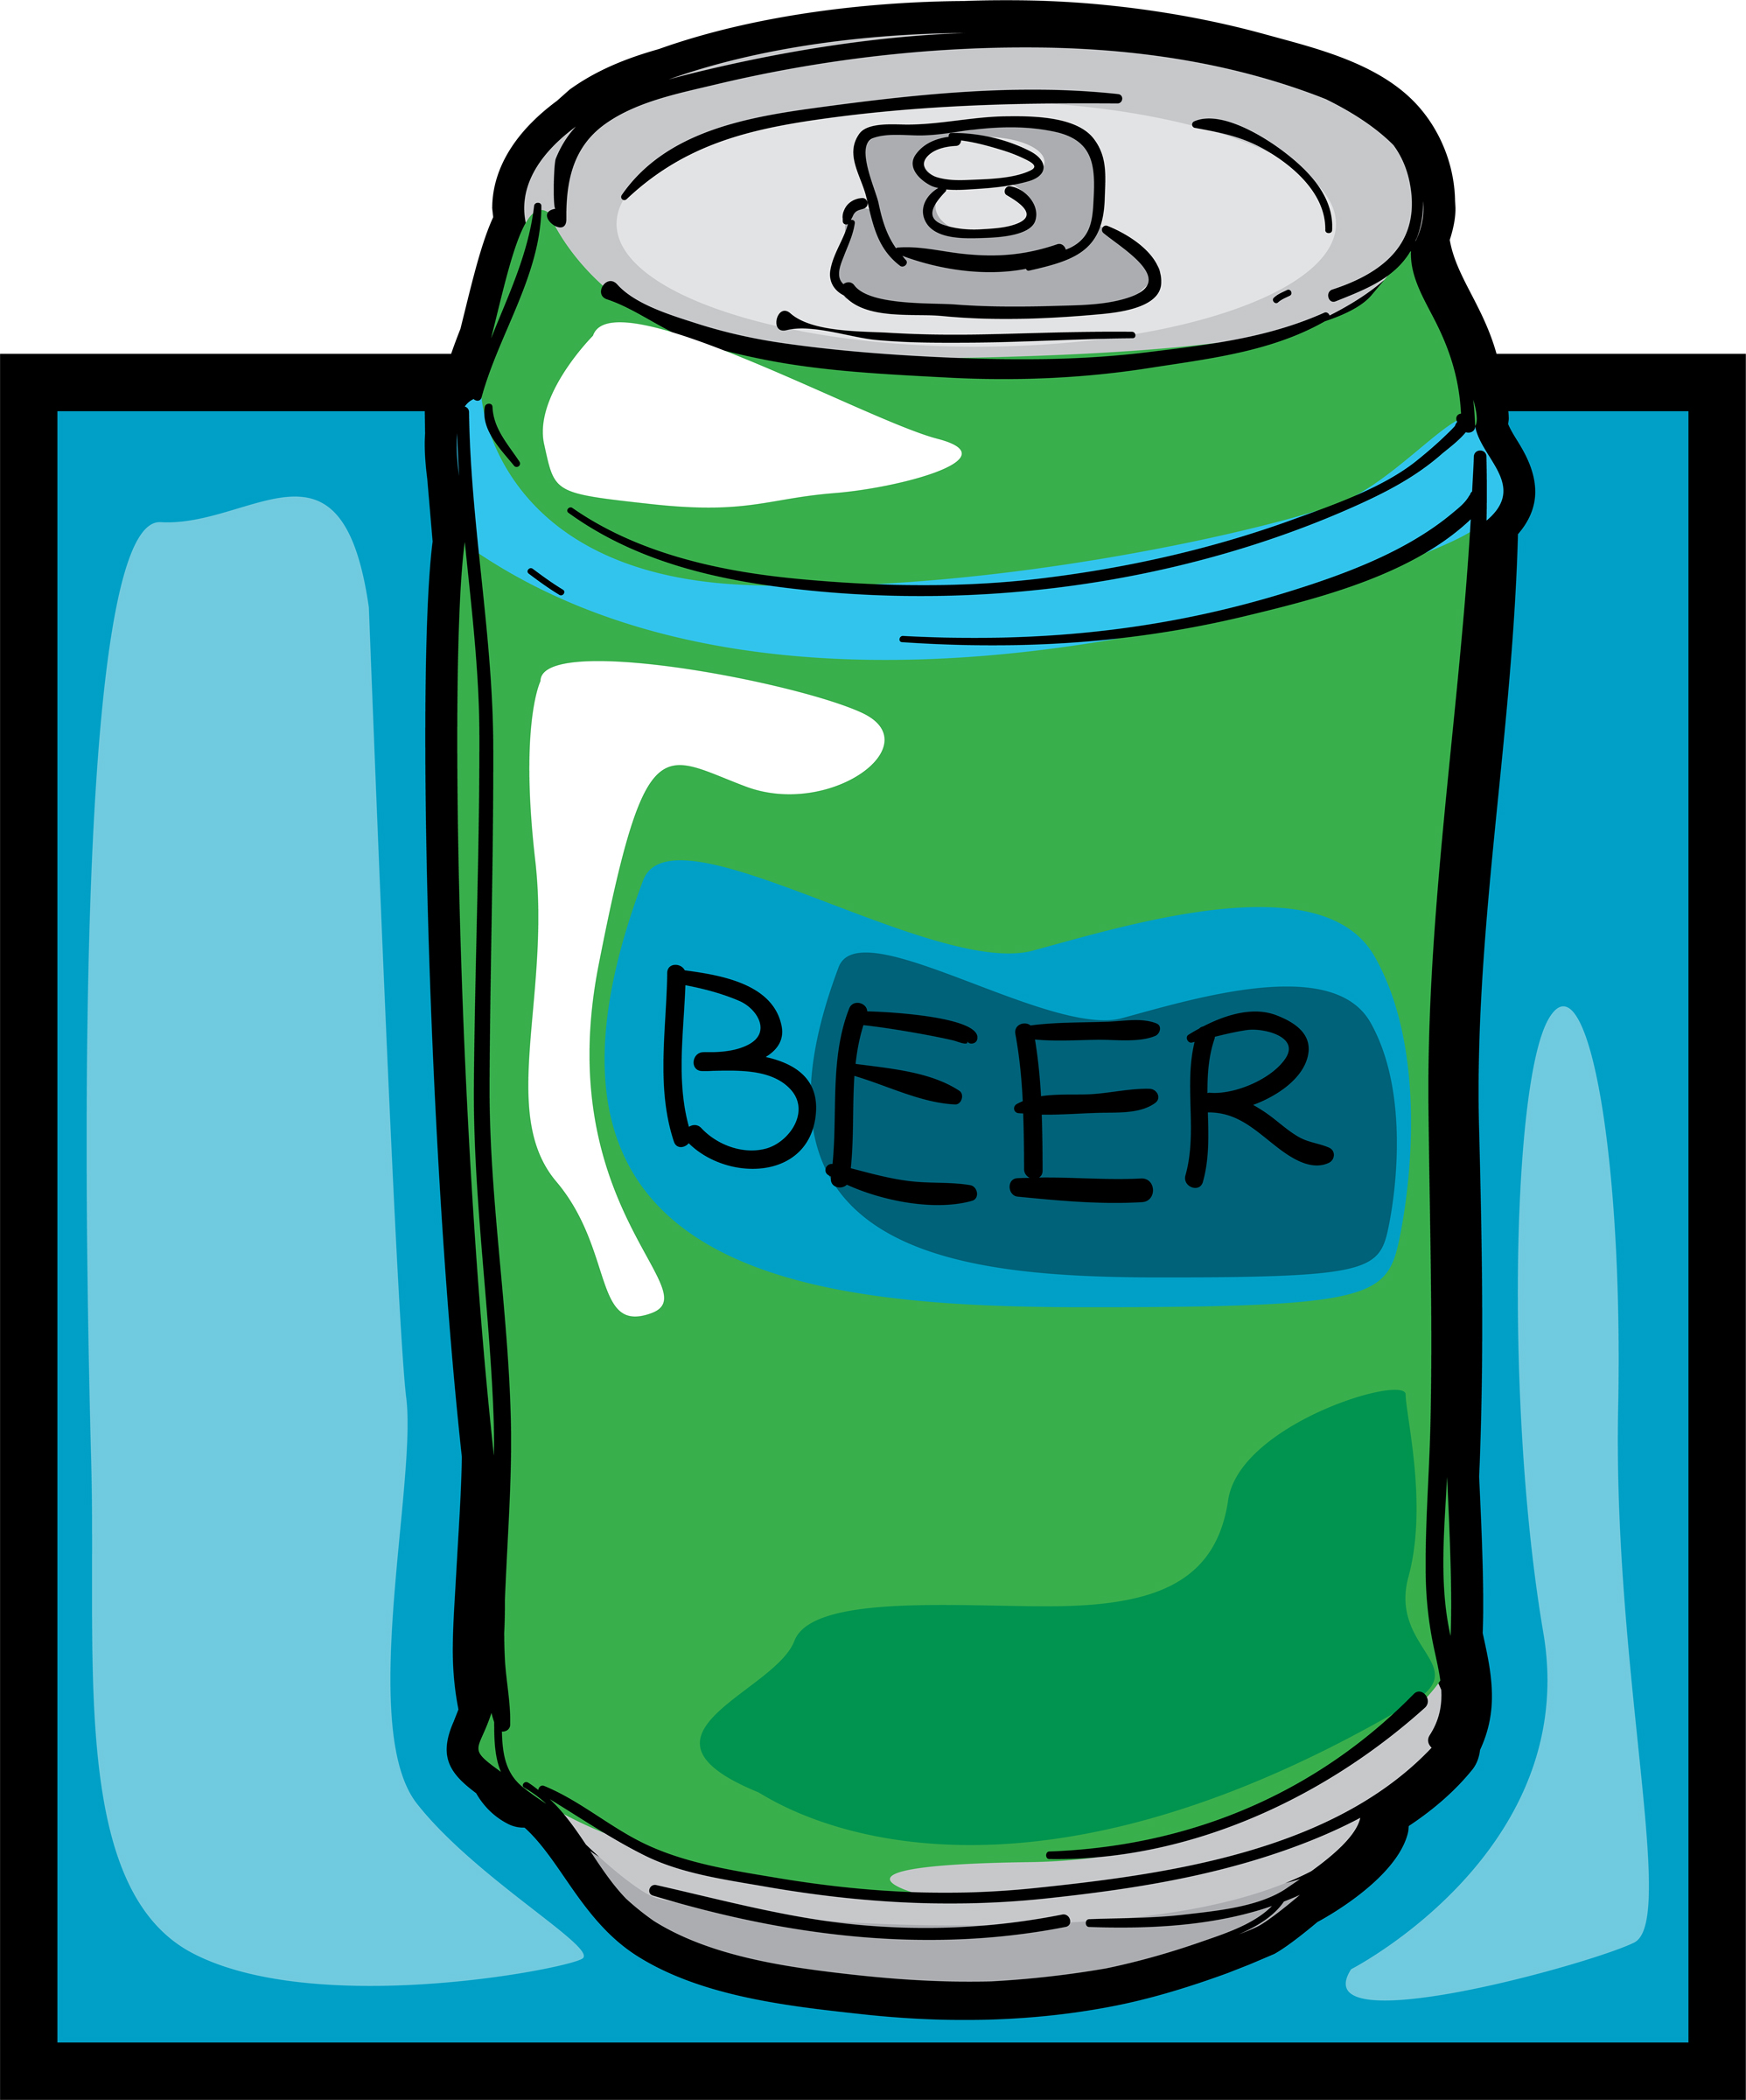 Beer cans clipart.